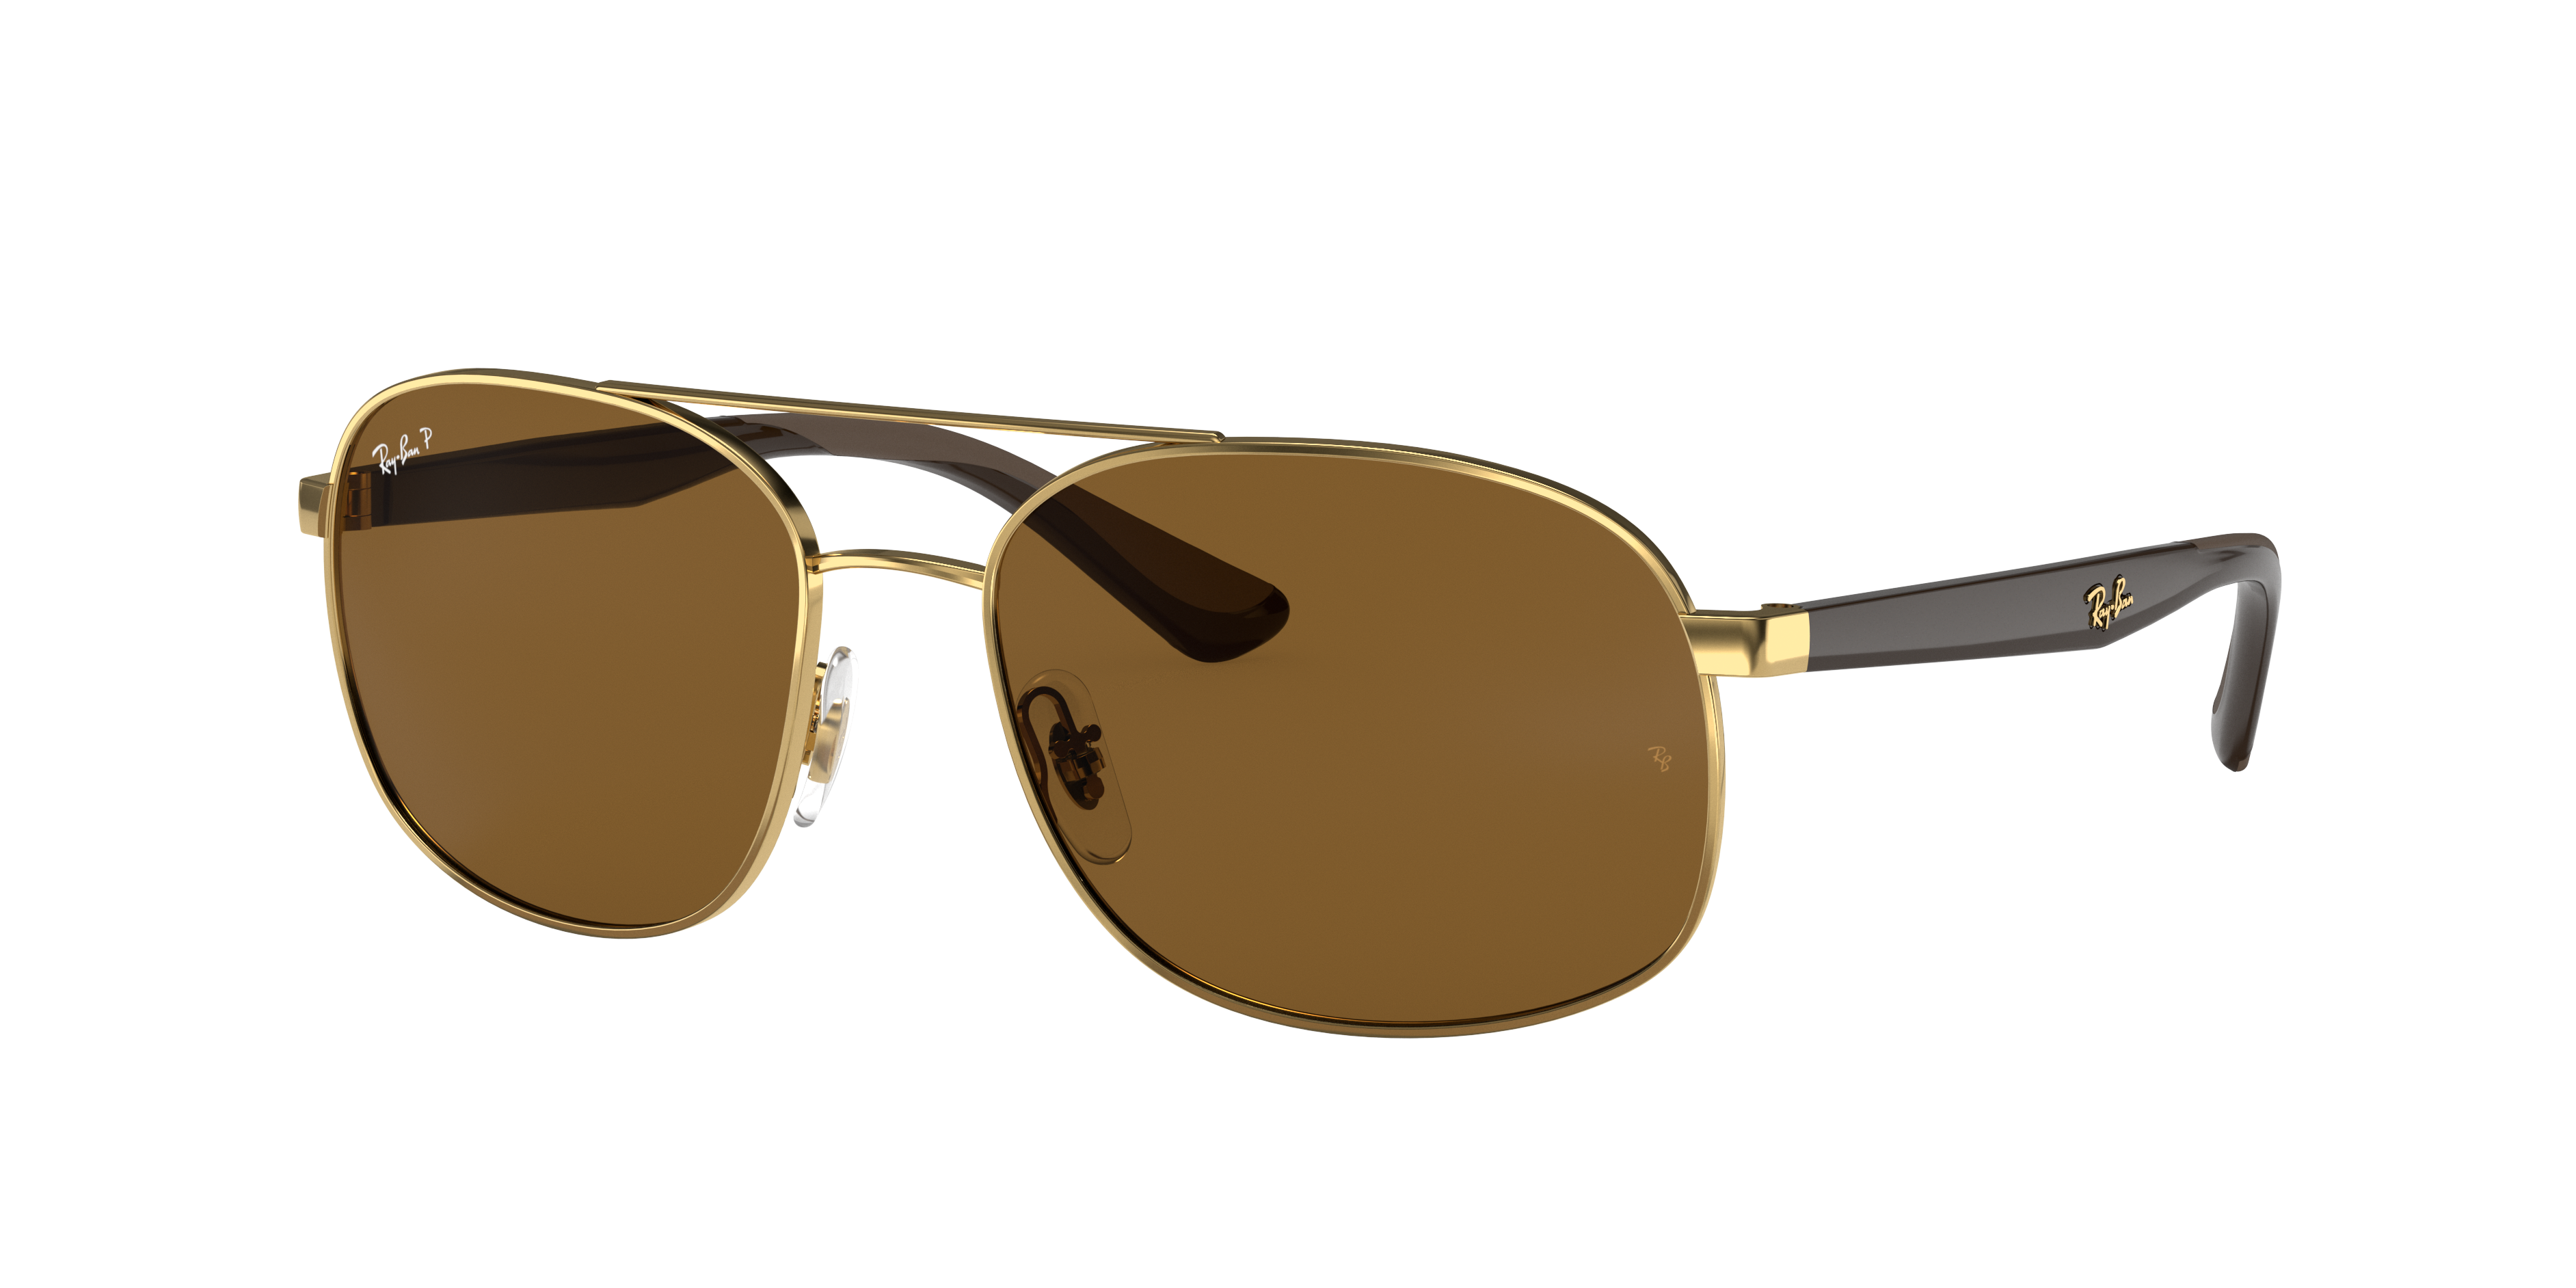 Ray-Ban Rb3593 Brown, Polarized Brown Lenses - RB3593